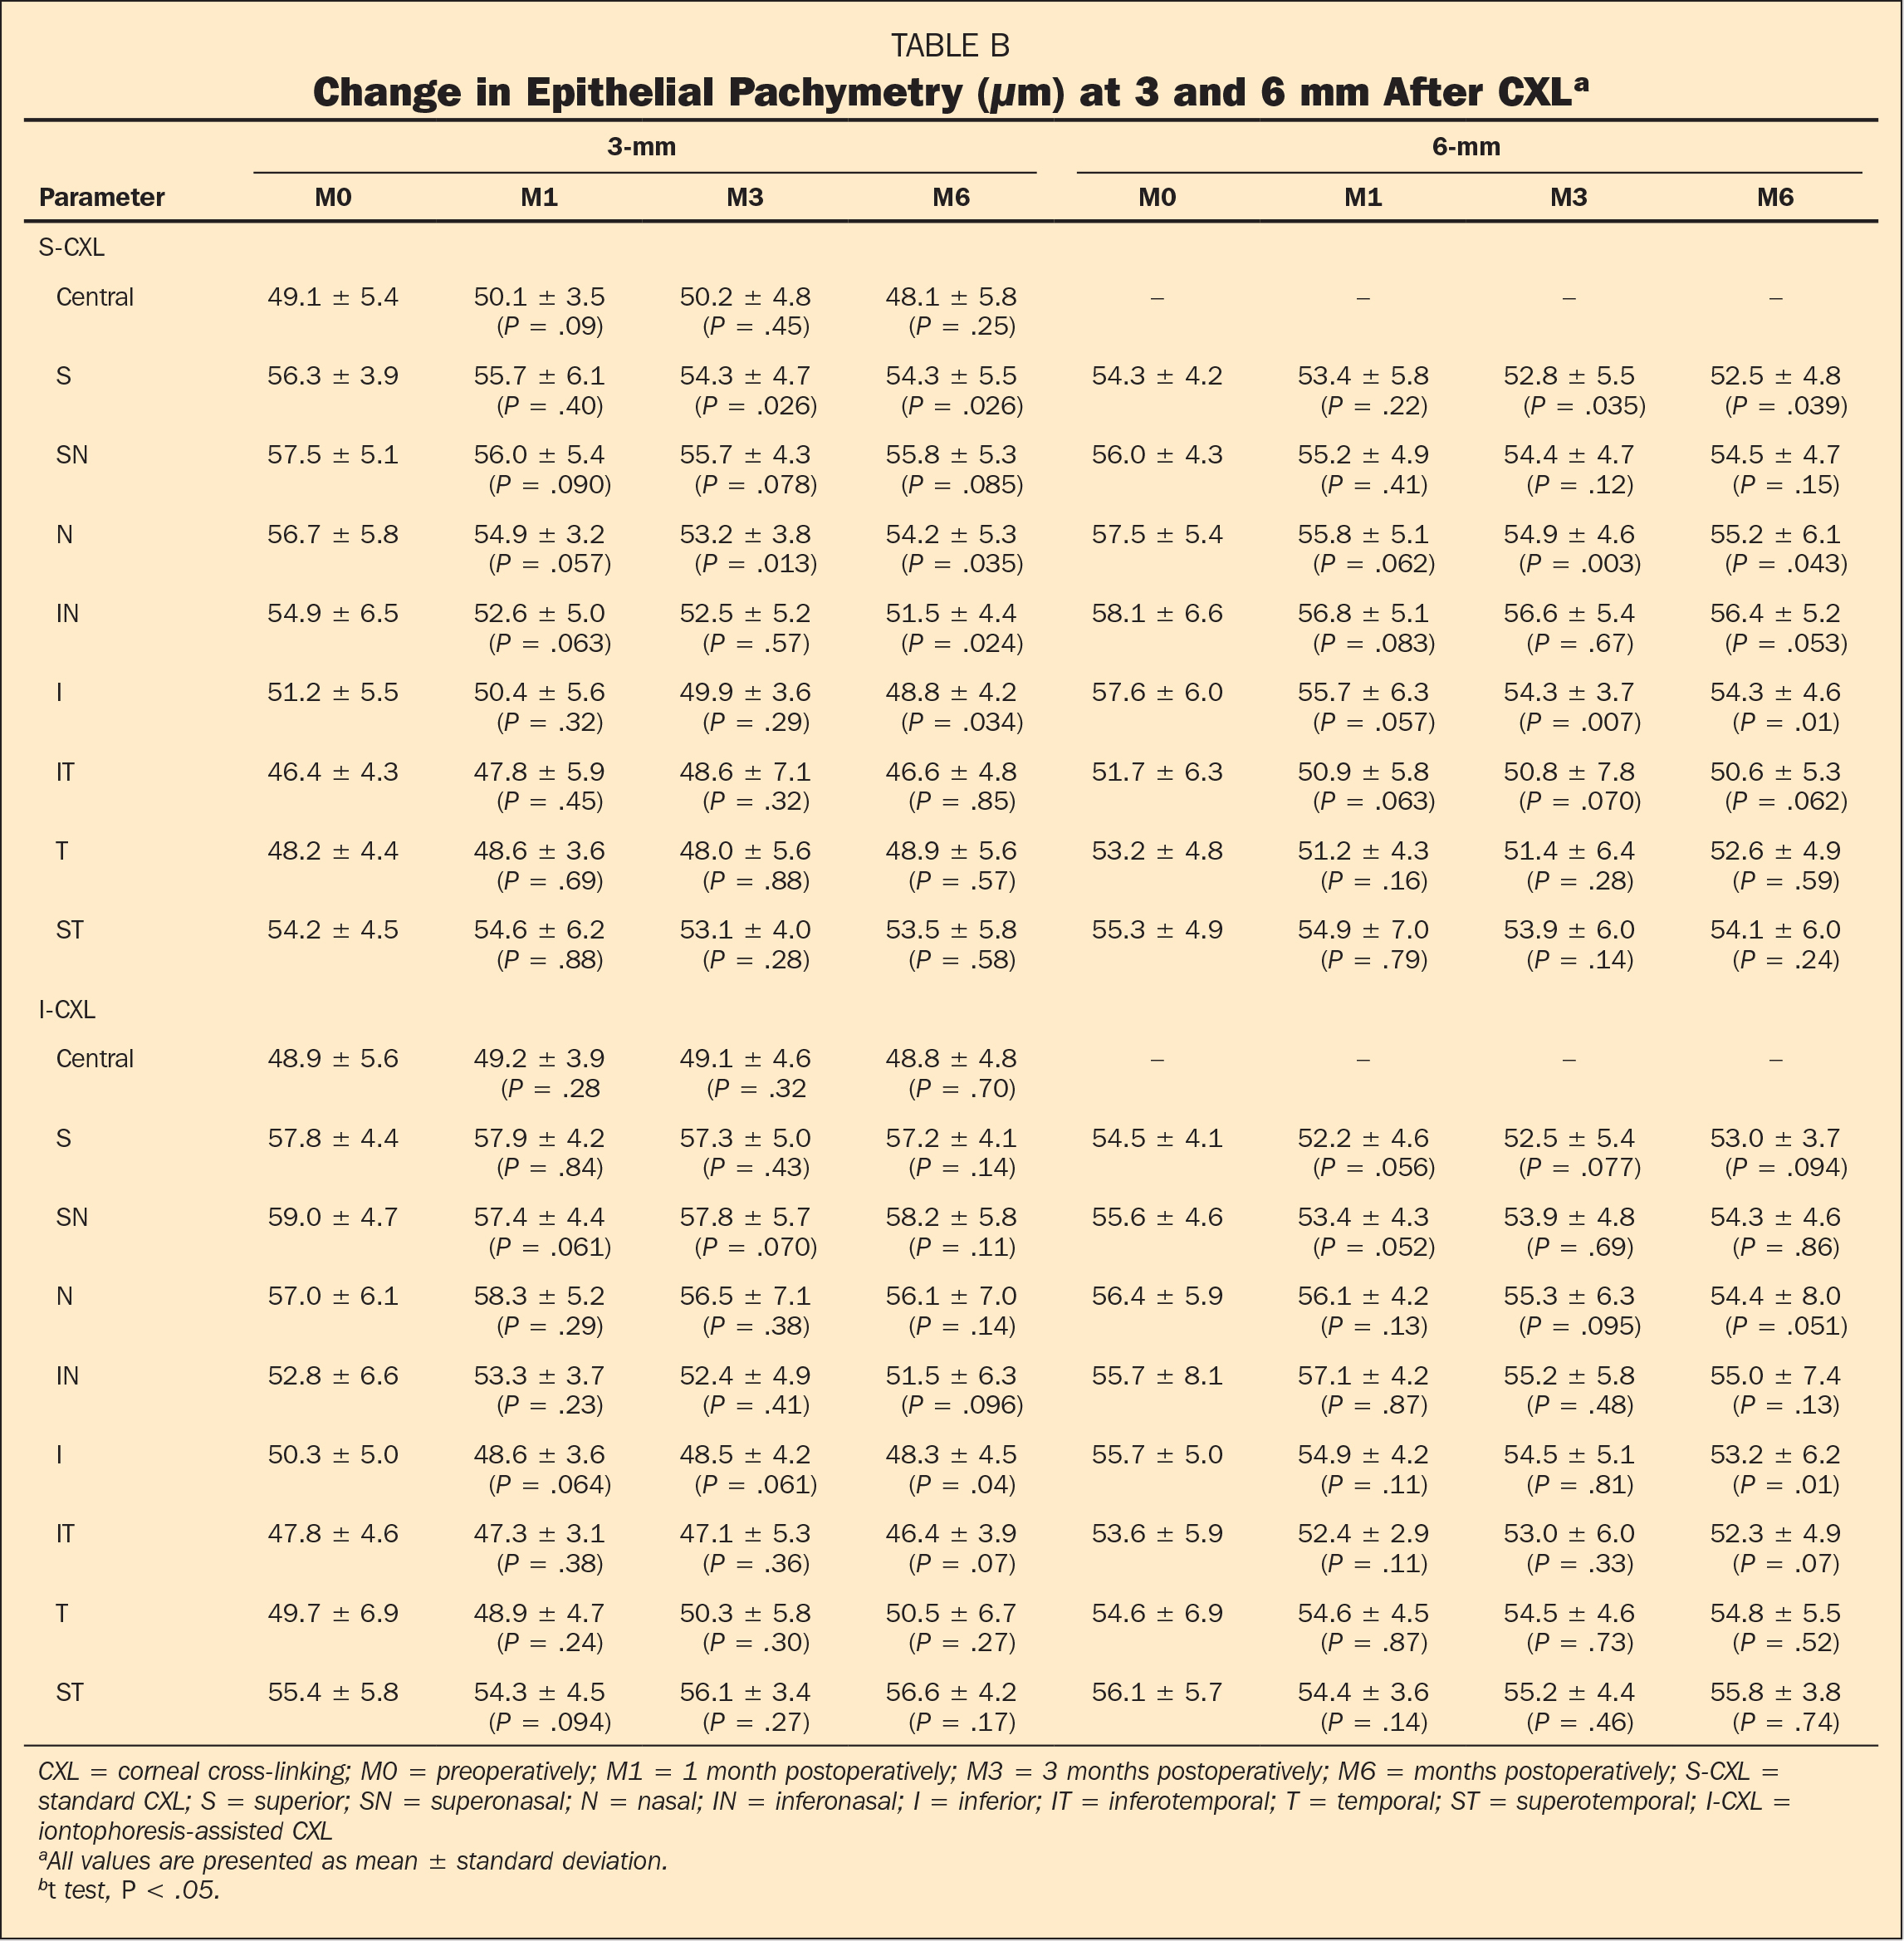 Change in Epithelial Pachymetry (μm) at 3 and 6 mm After CXLa